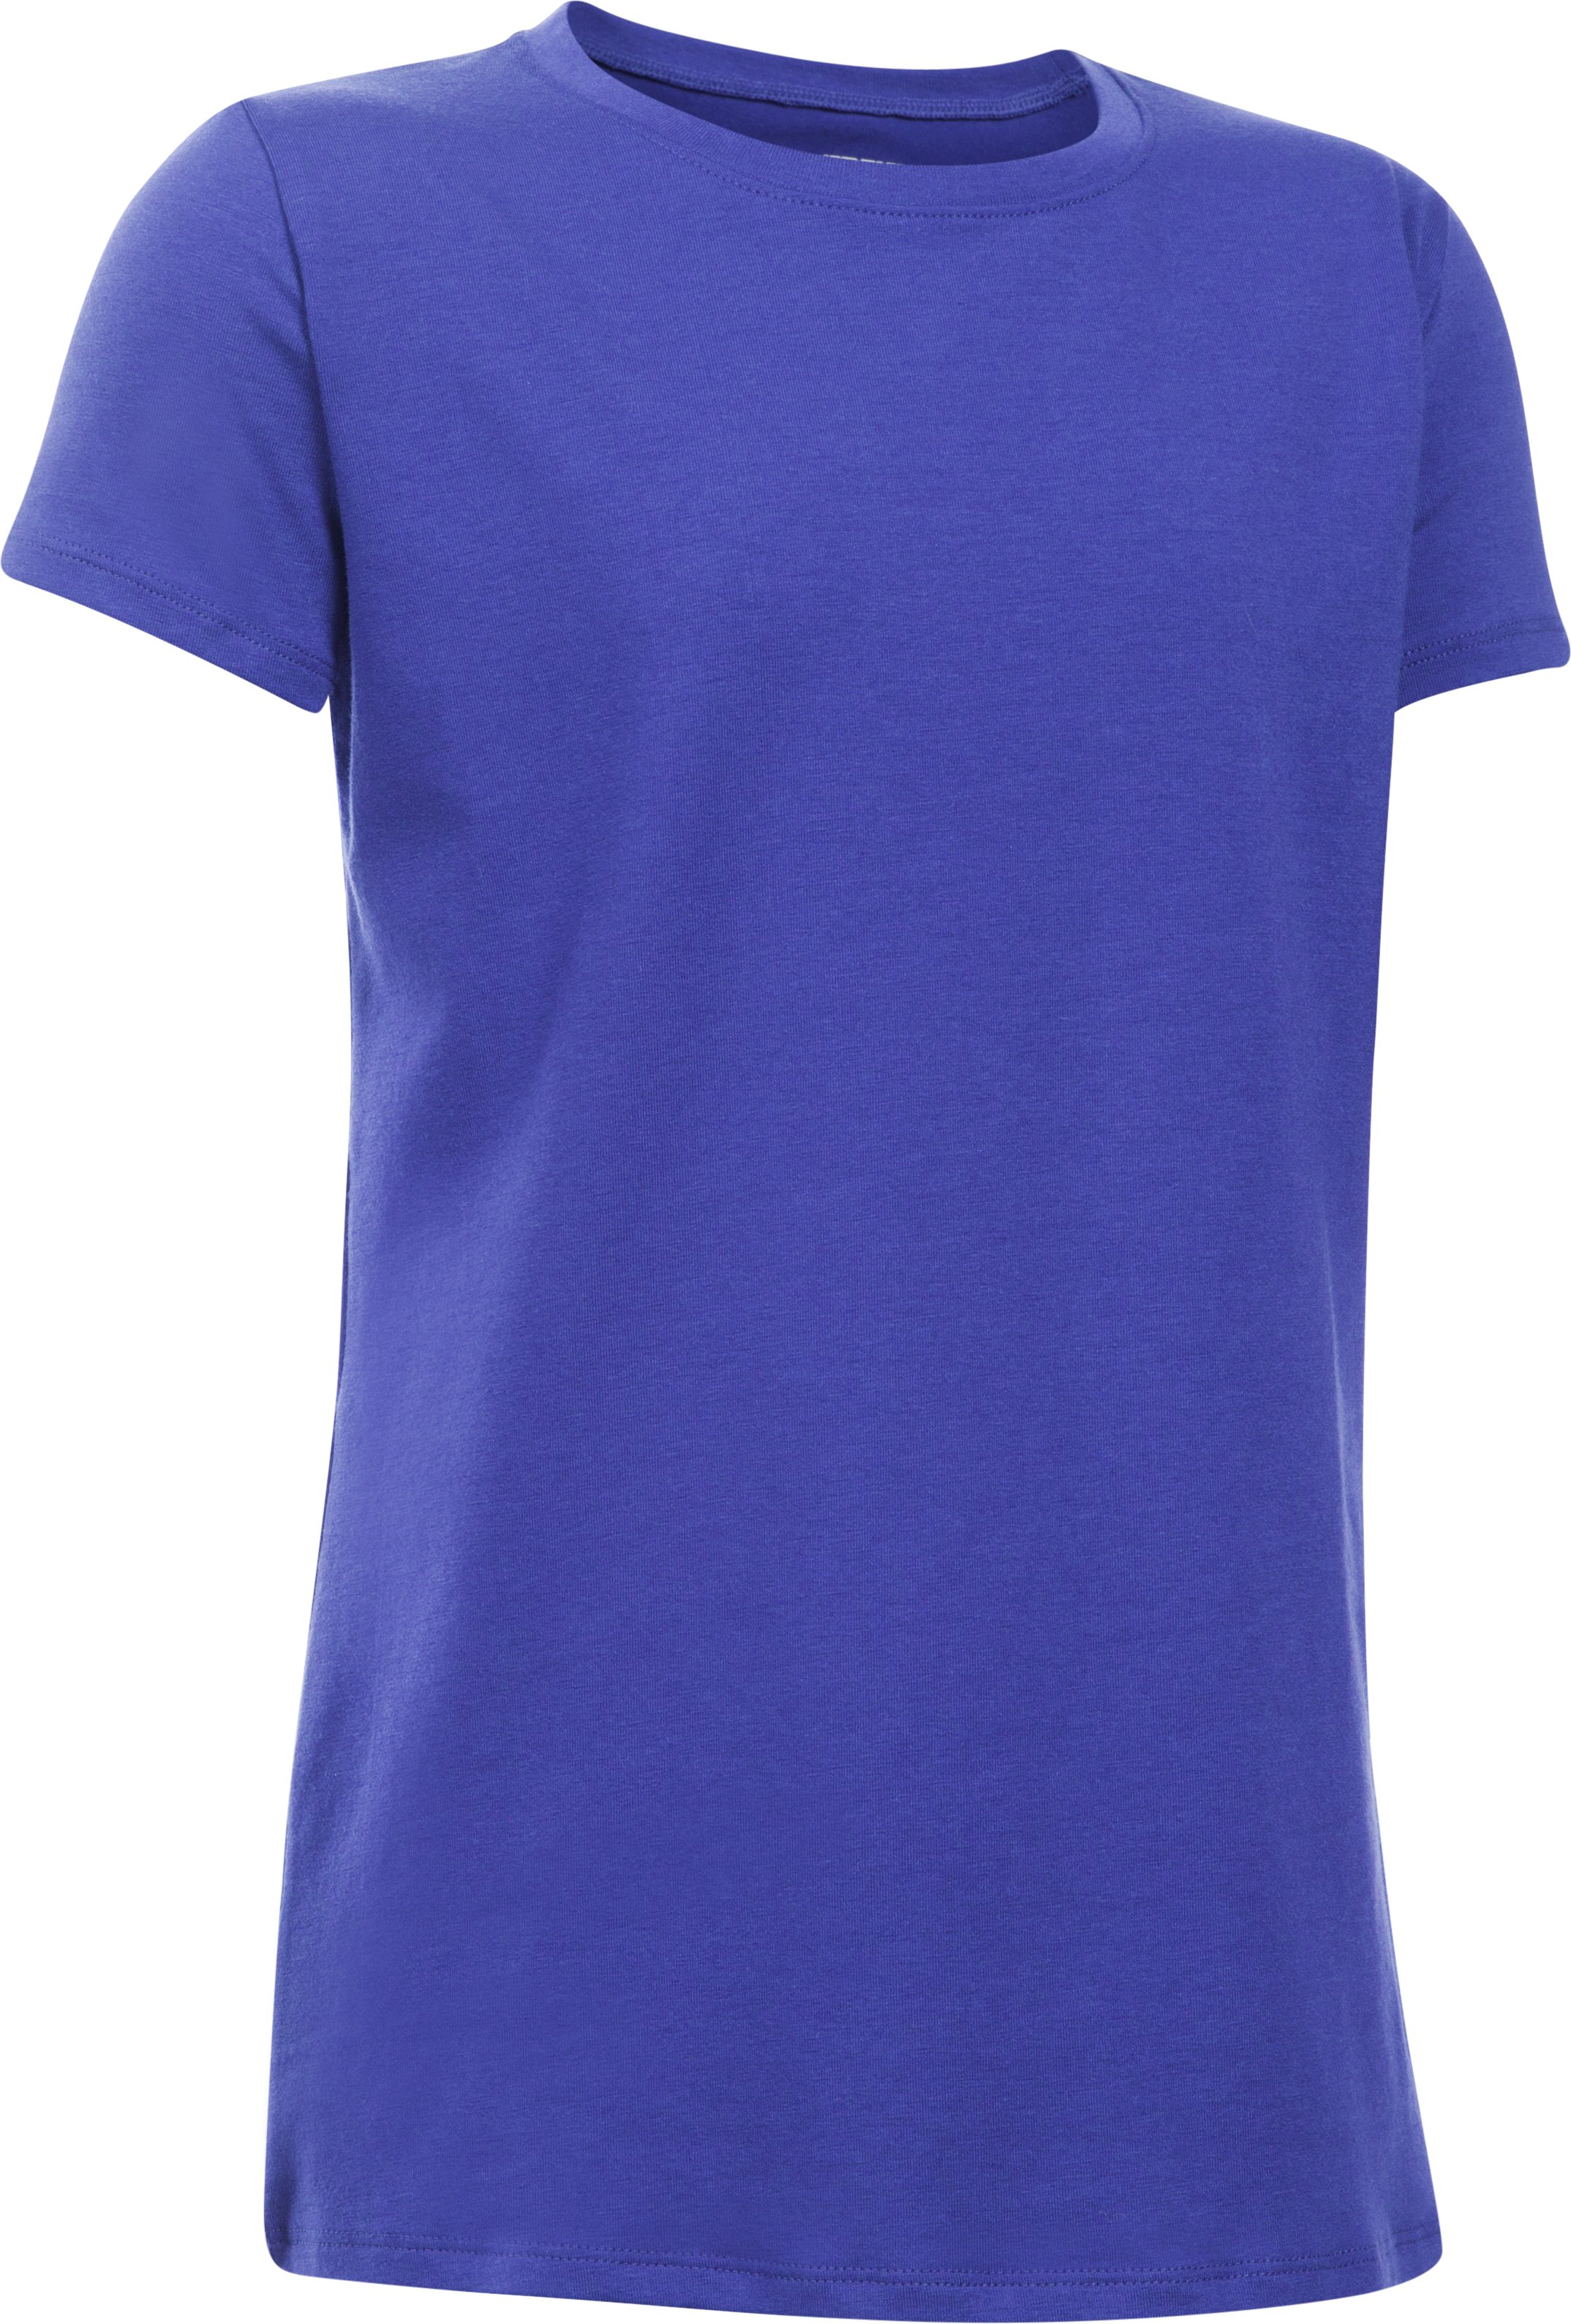 Girls' UA Charged Cotton® T-Shirt 3 Colors $10.00 - $11.99